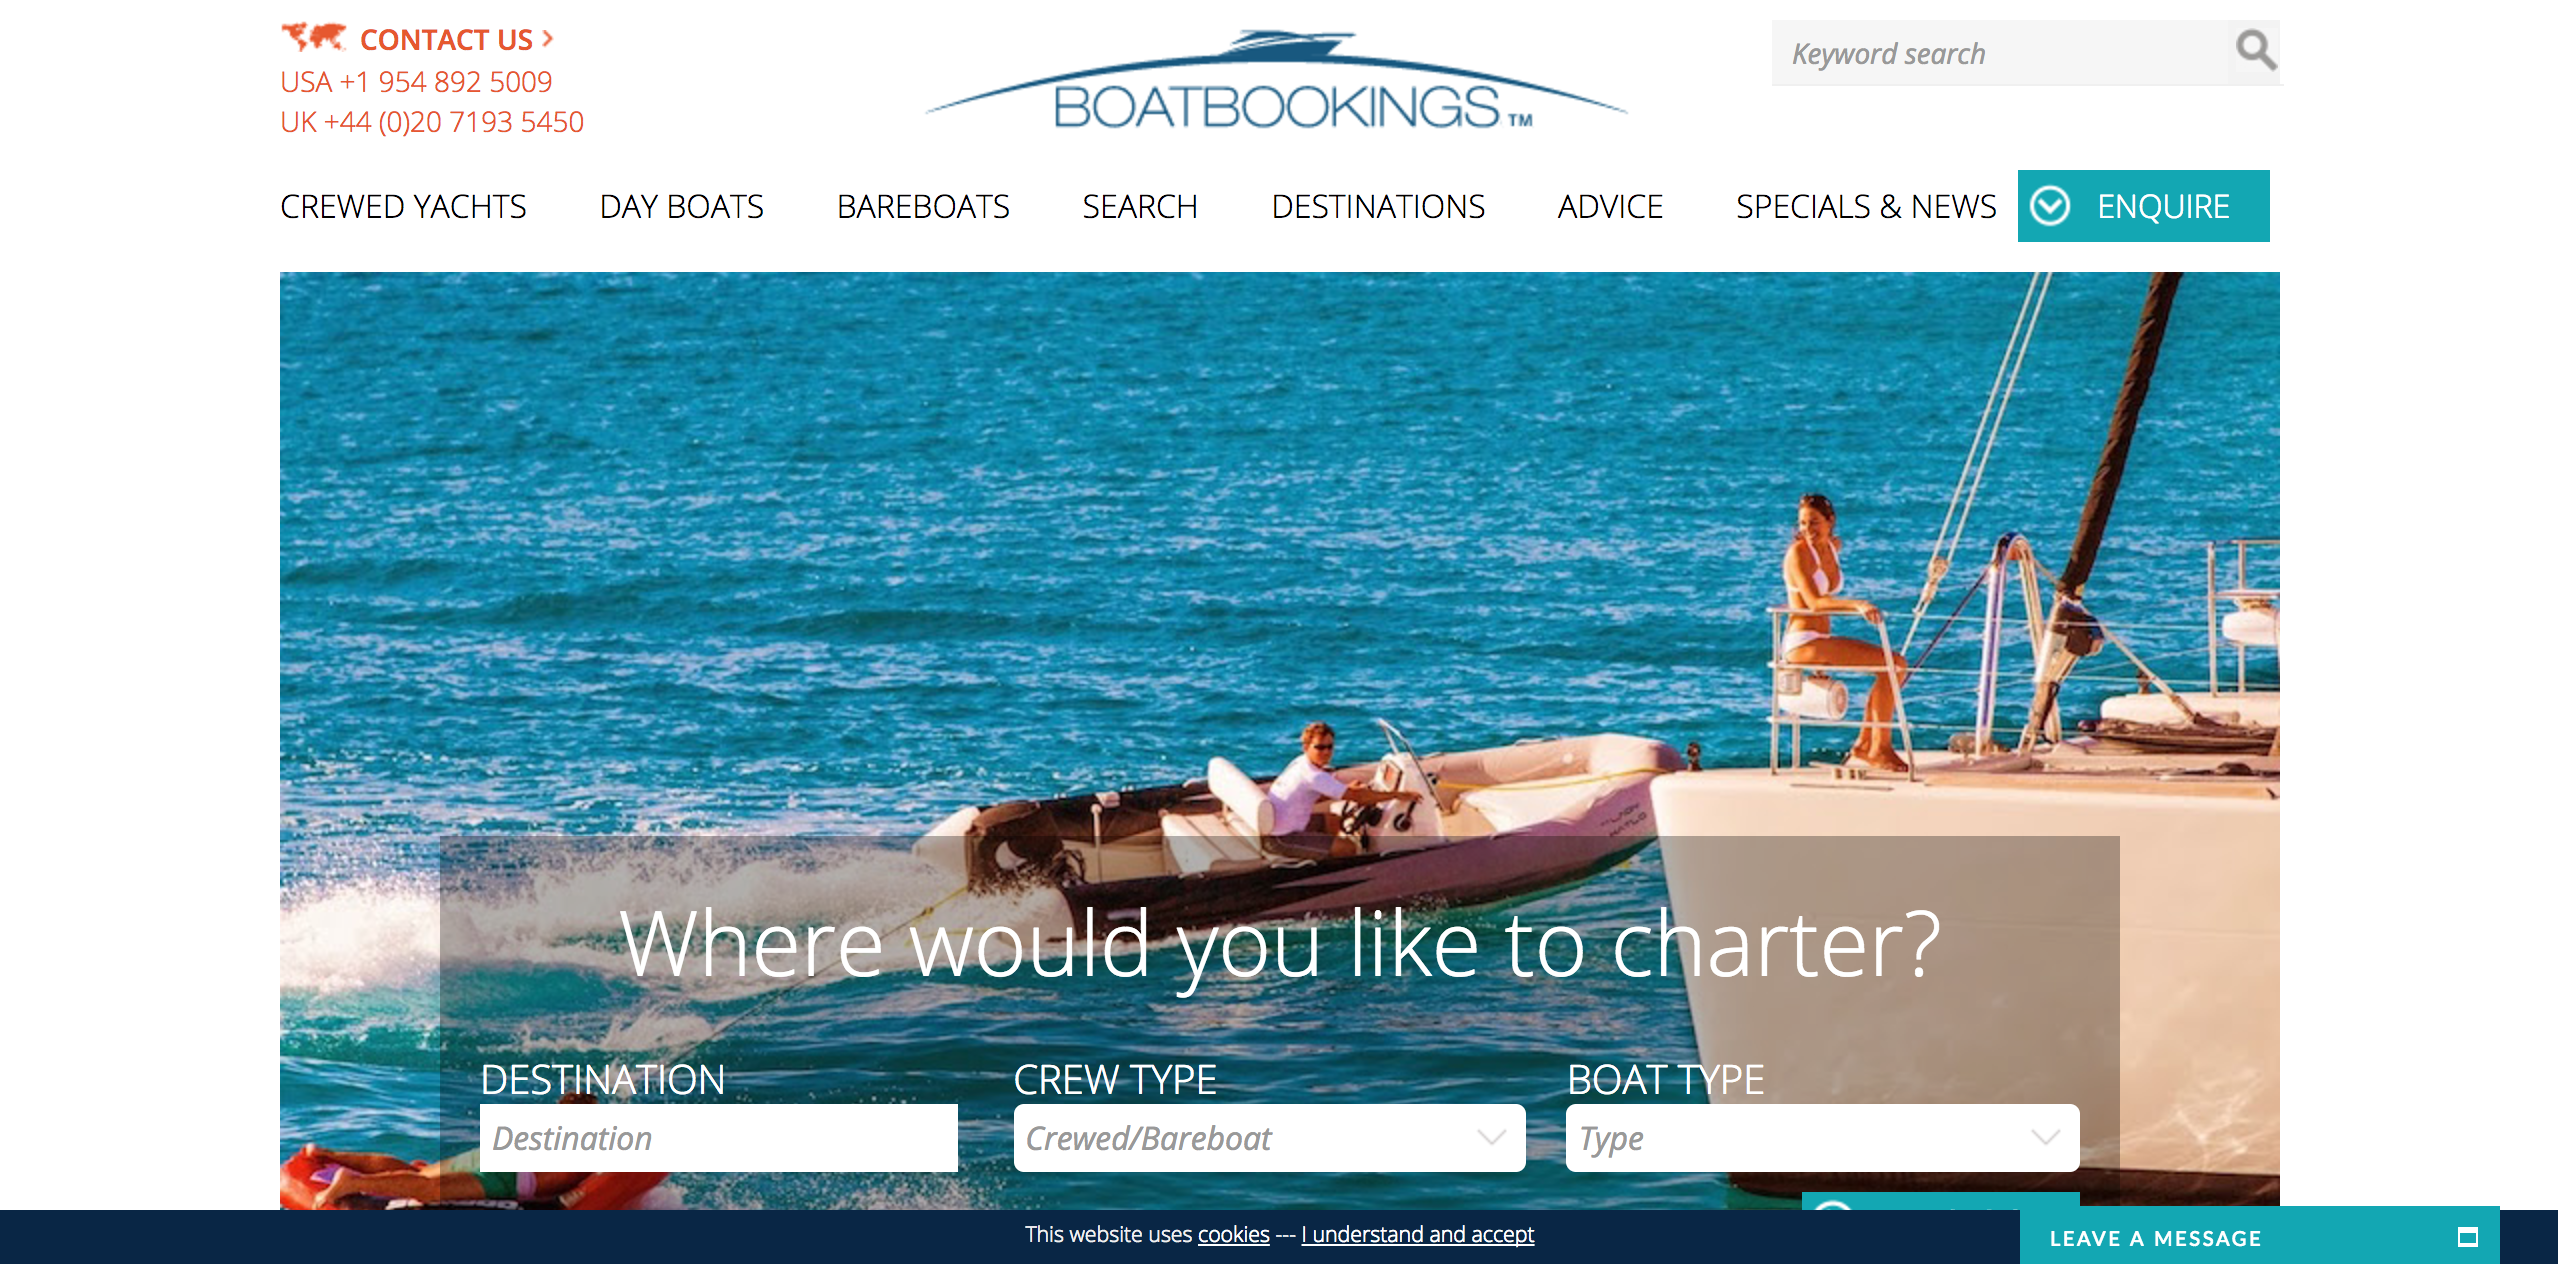 BoatBookings